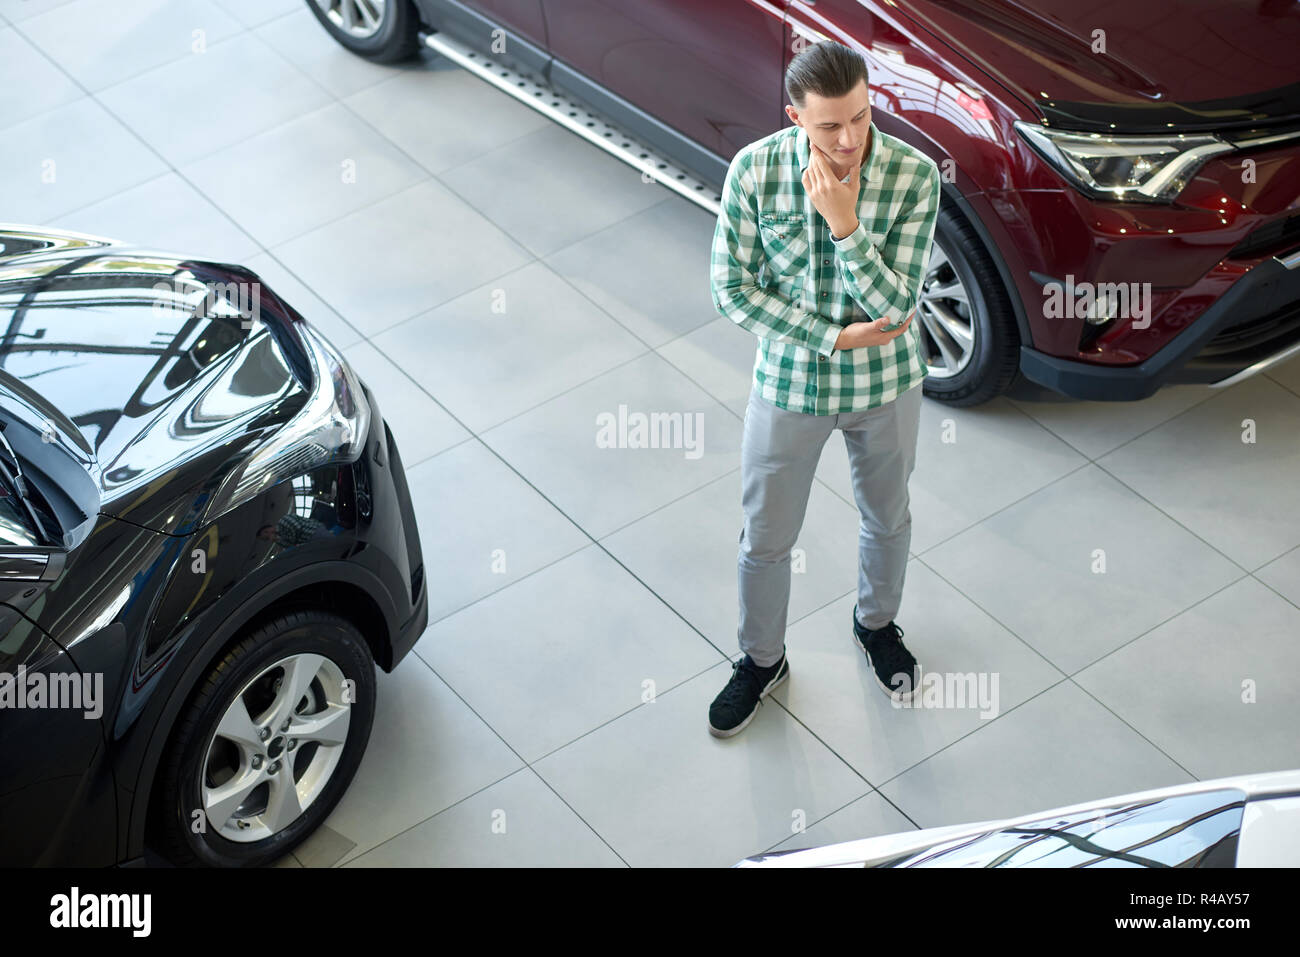 One Owner Car Guy >> Young Man Standing Between Black And Dark Red Cars Guy In Checkered